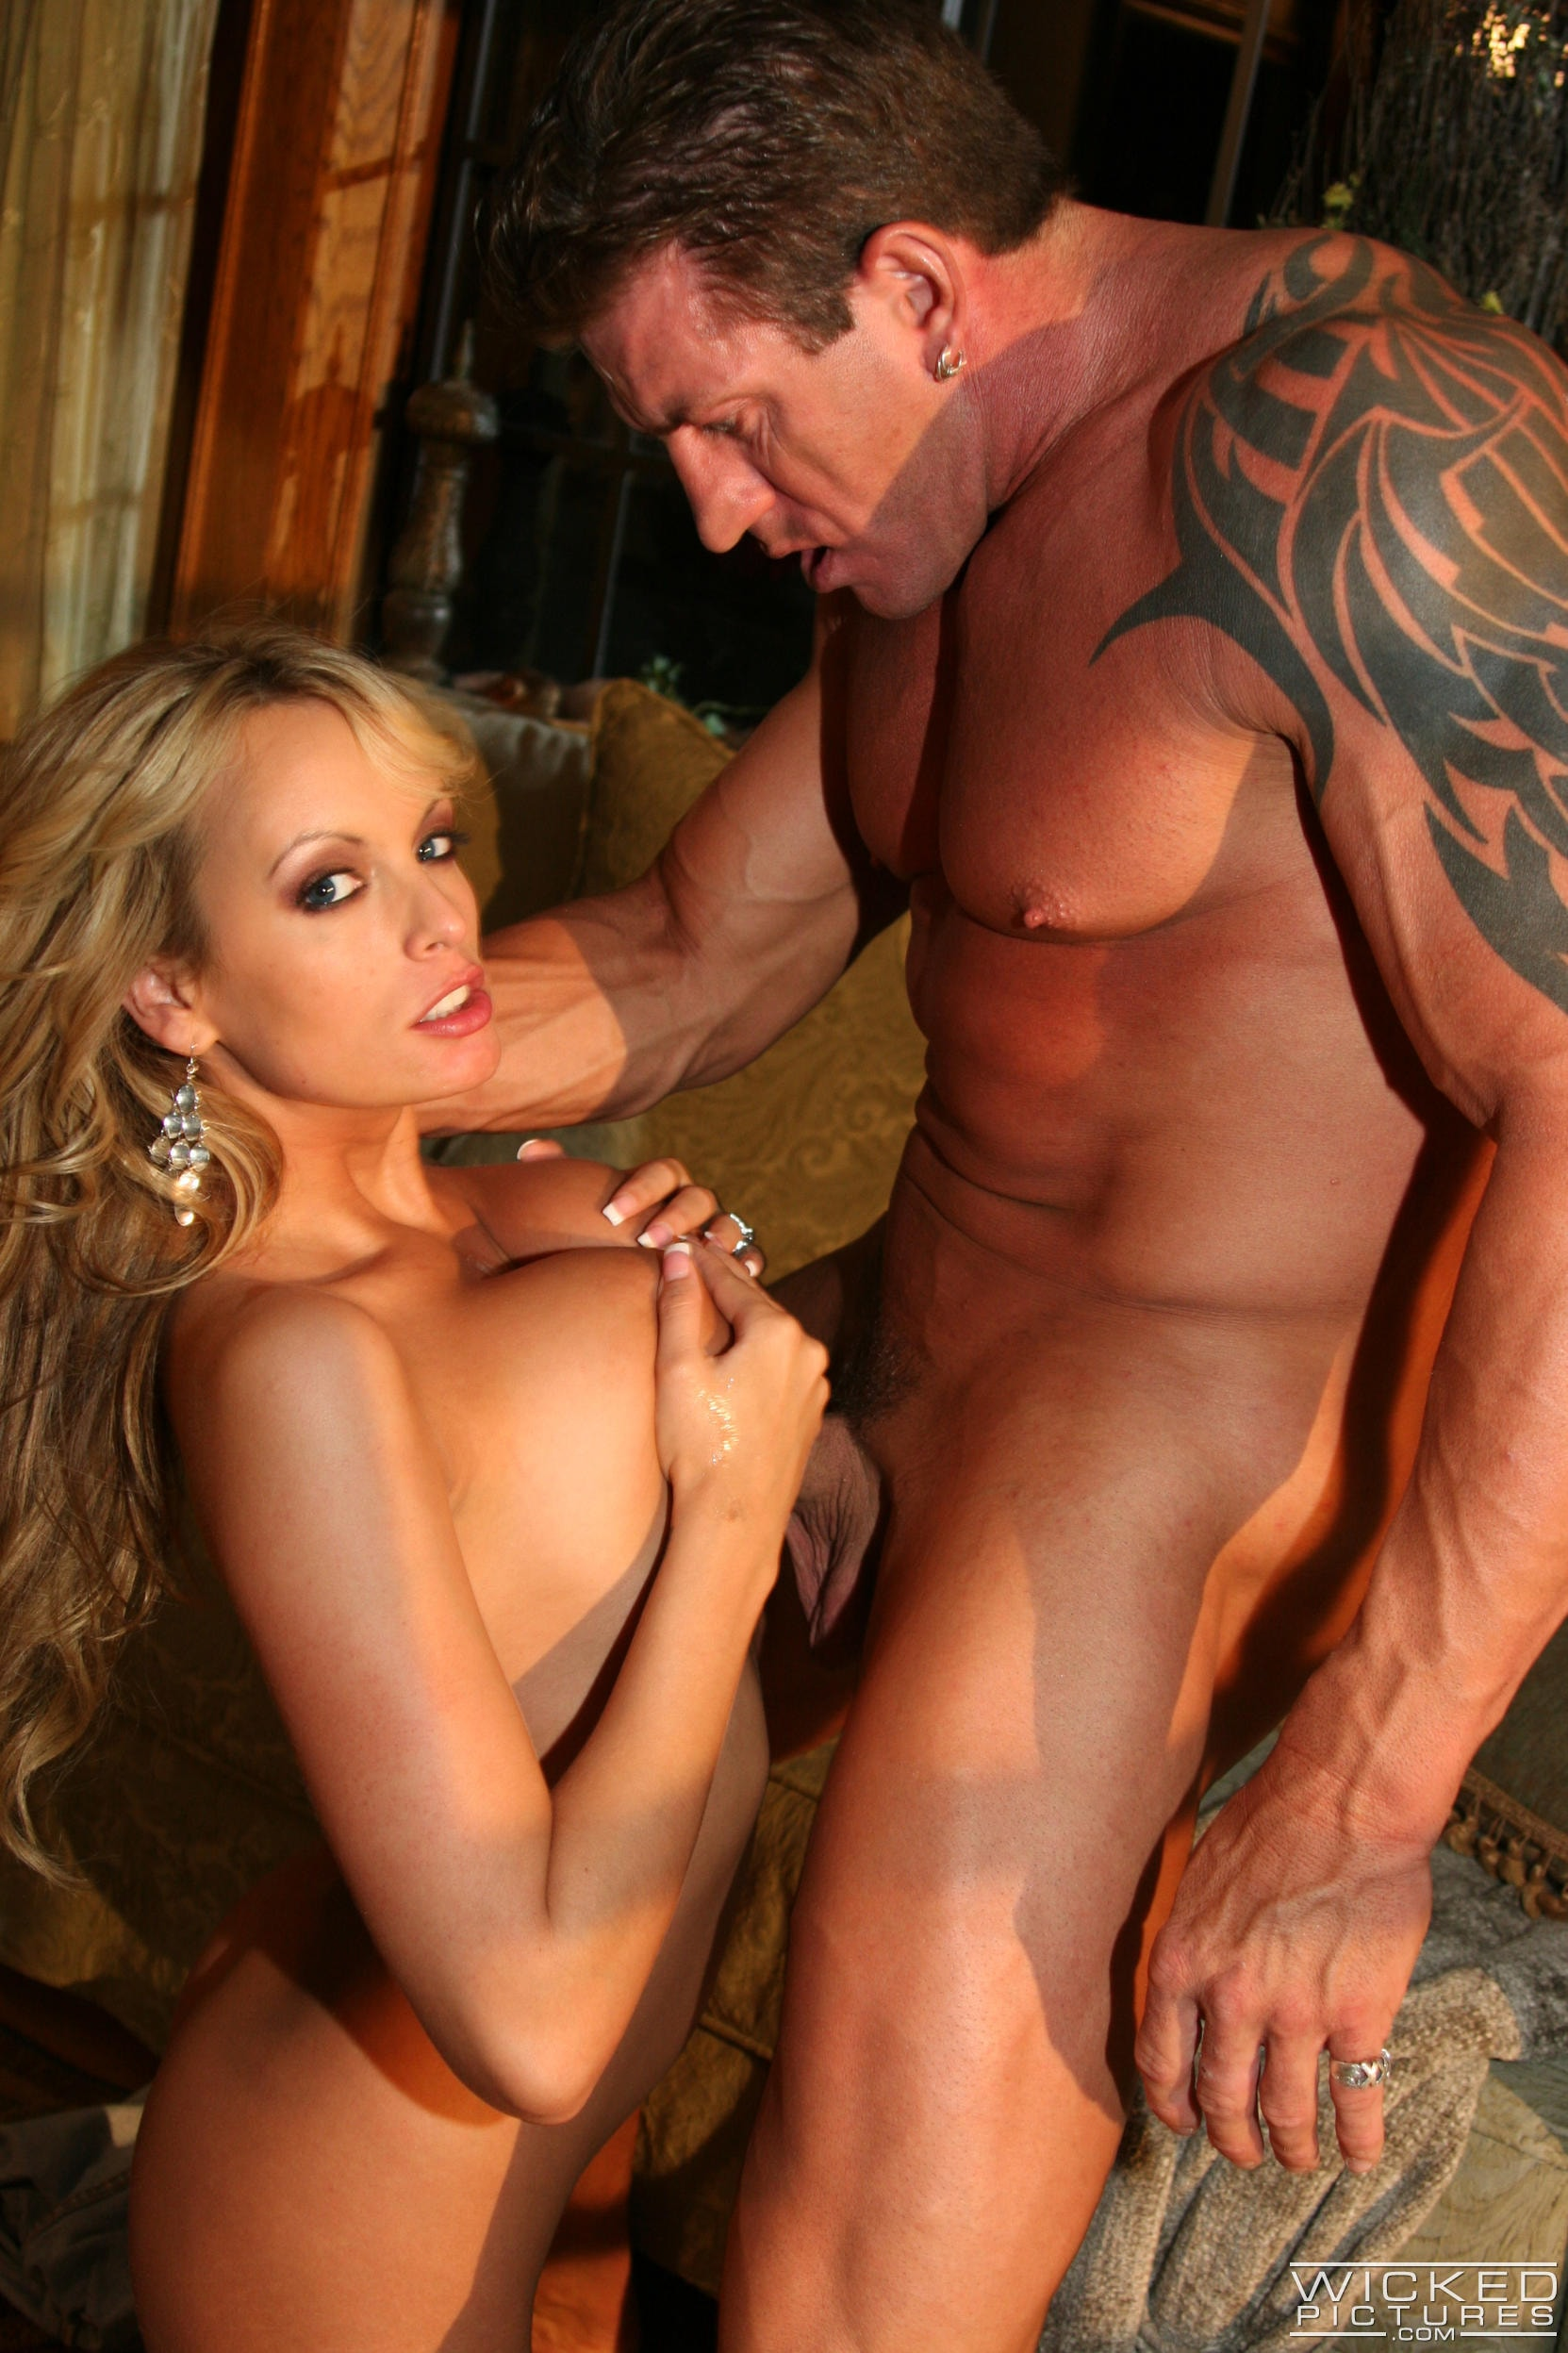 Wicked 'Watching Samantha Scene 4' starring Stormy Daniels (Photo 21)